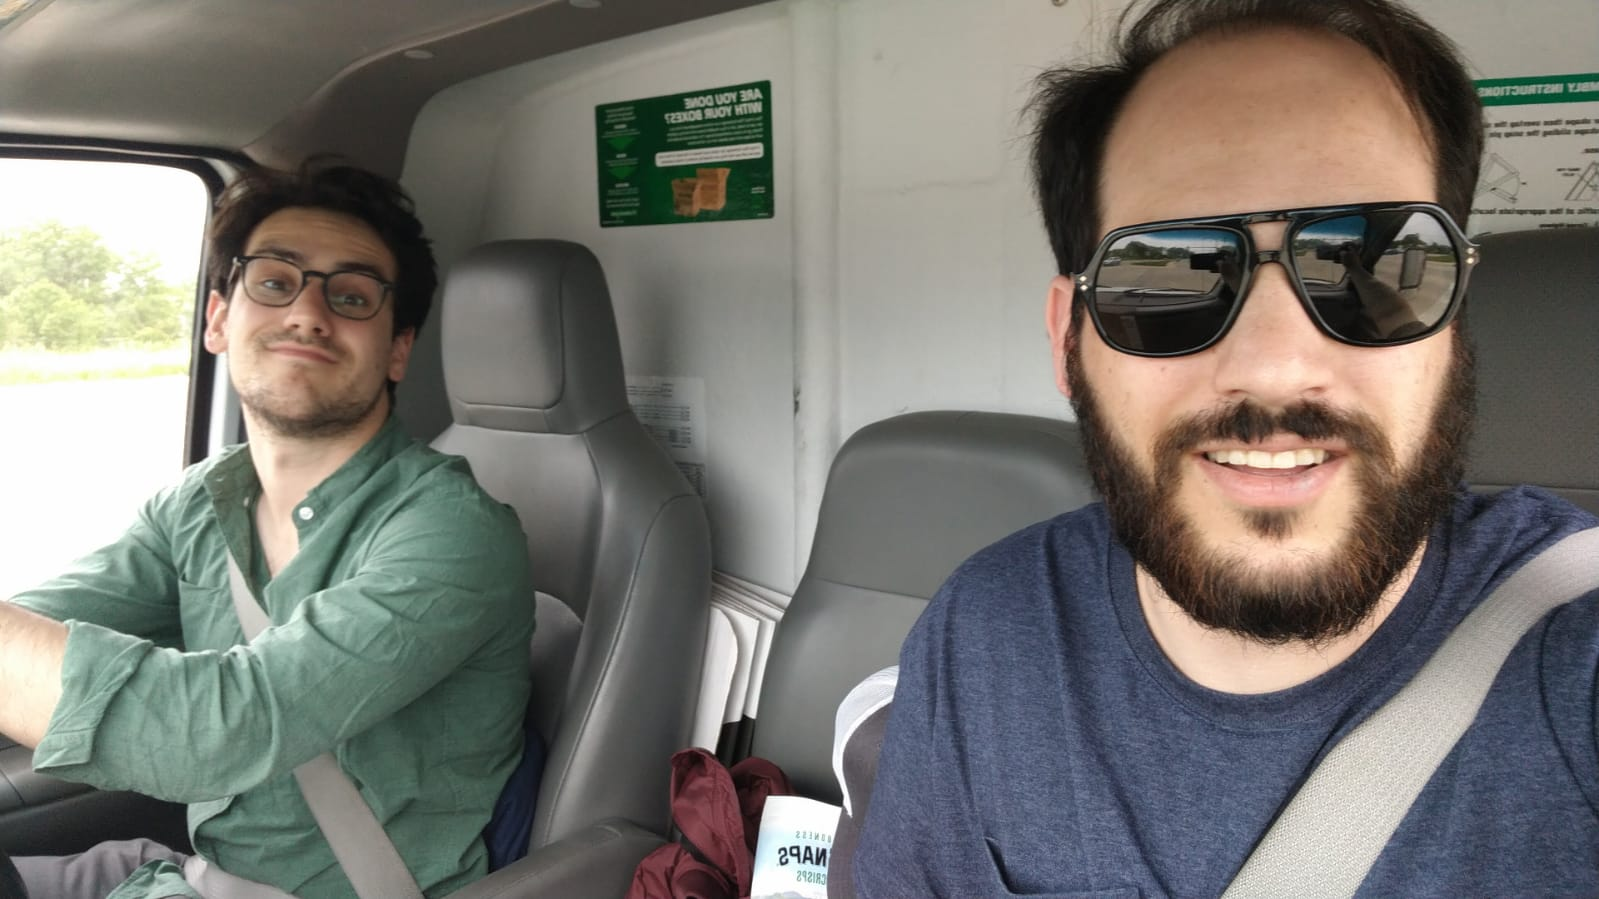 Moss and Judd June 3, 2019 Driving the U-Haul cross country from Portland, OR